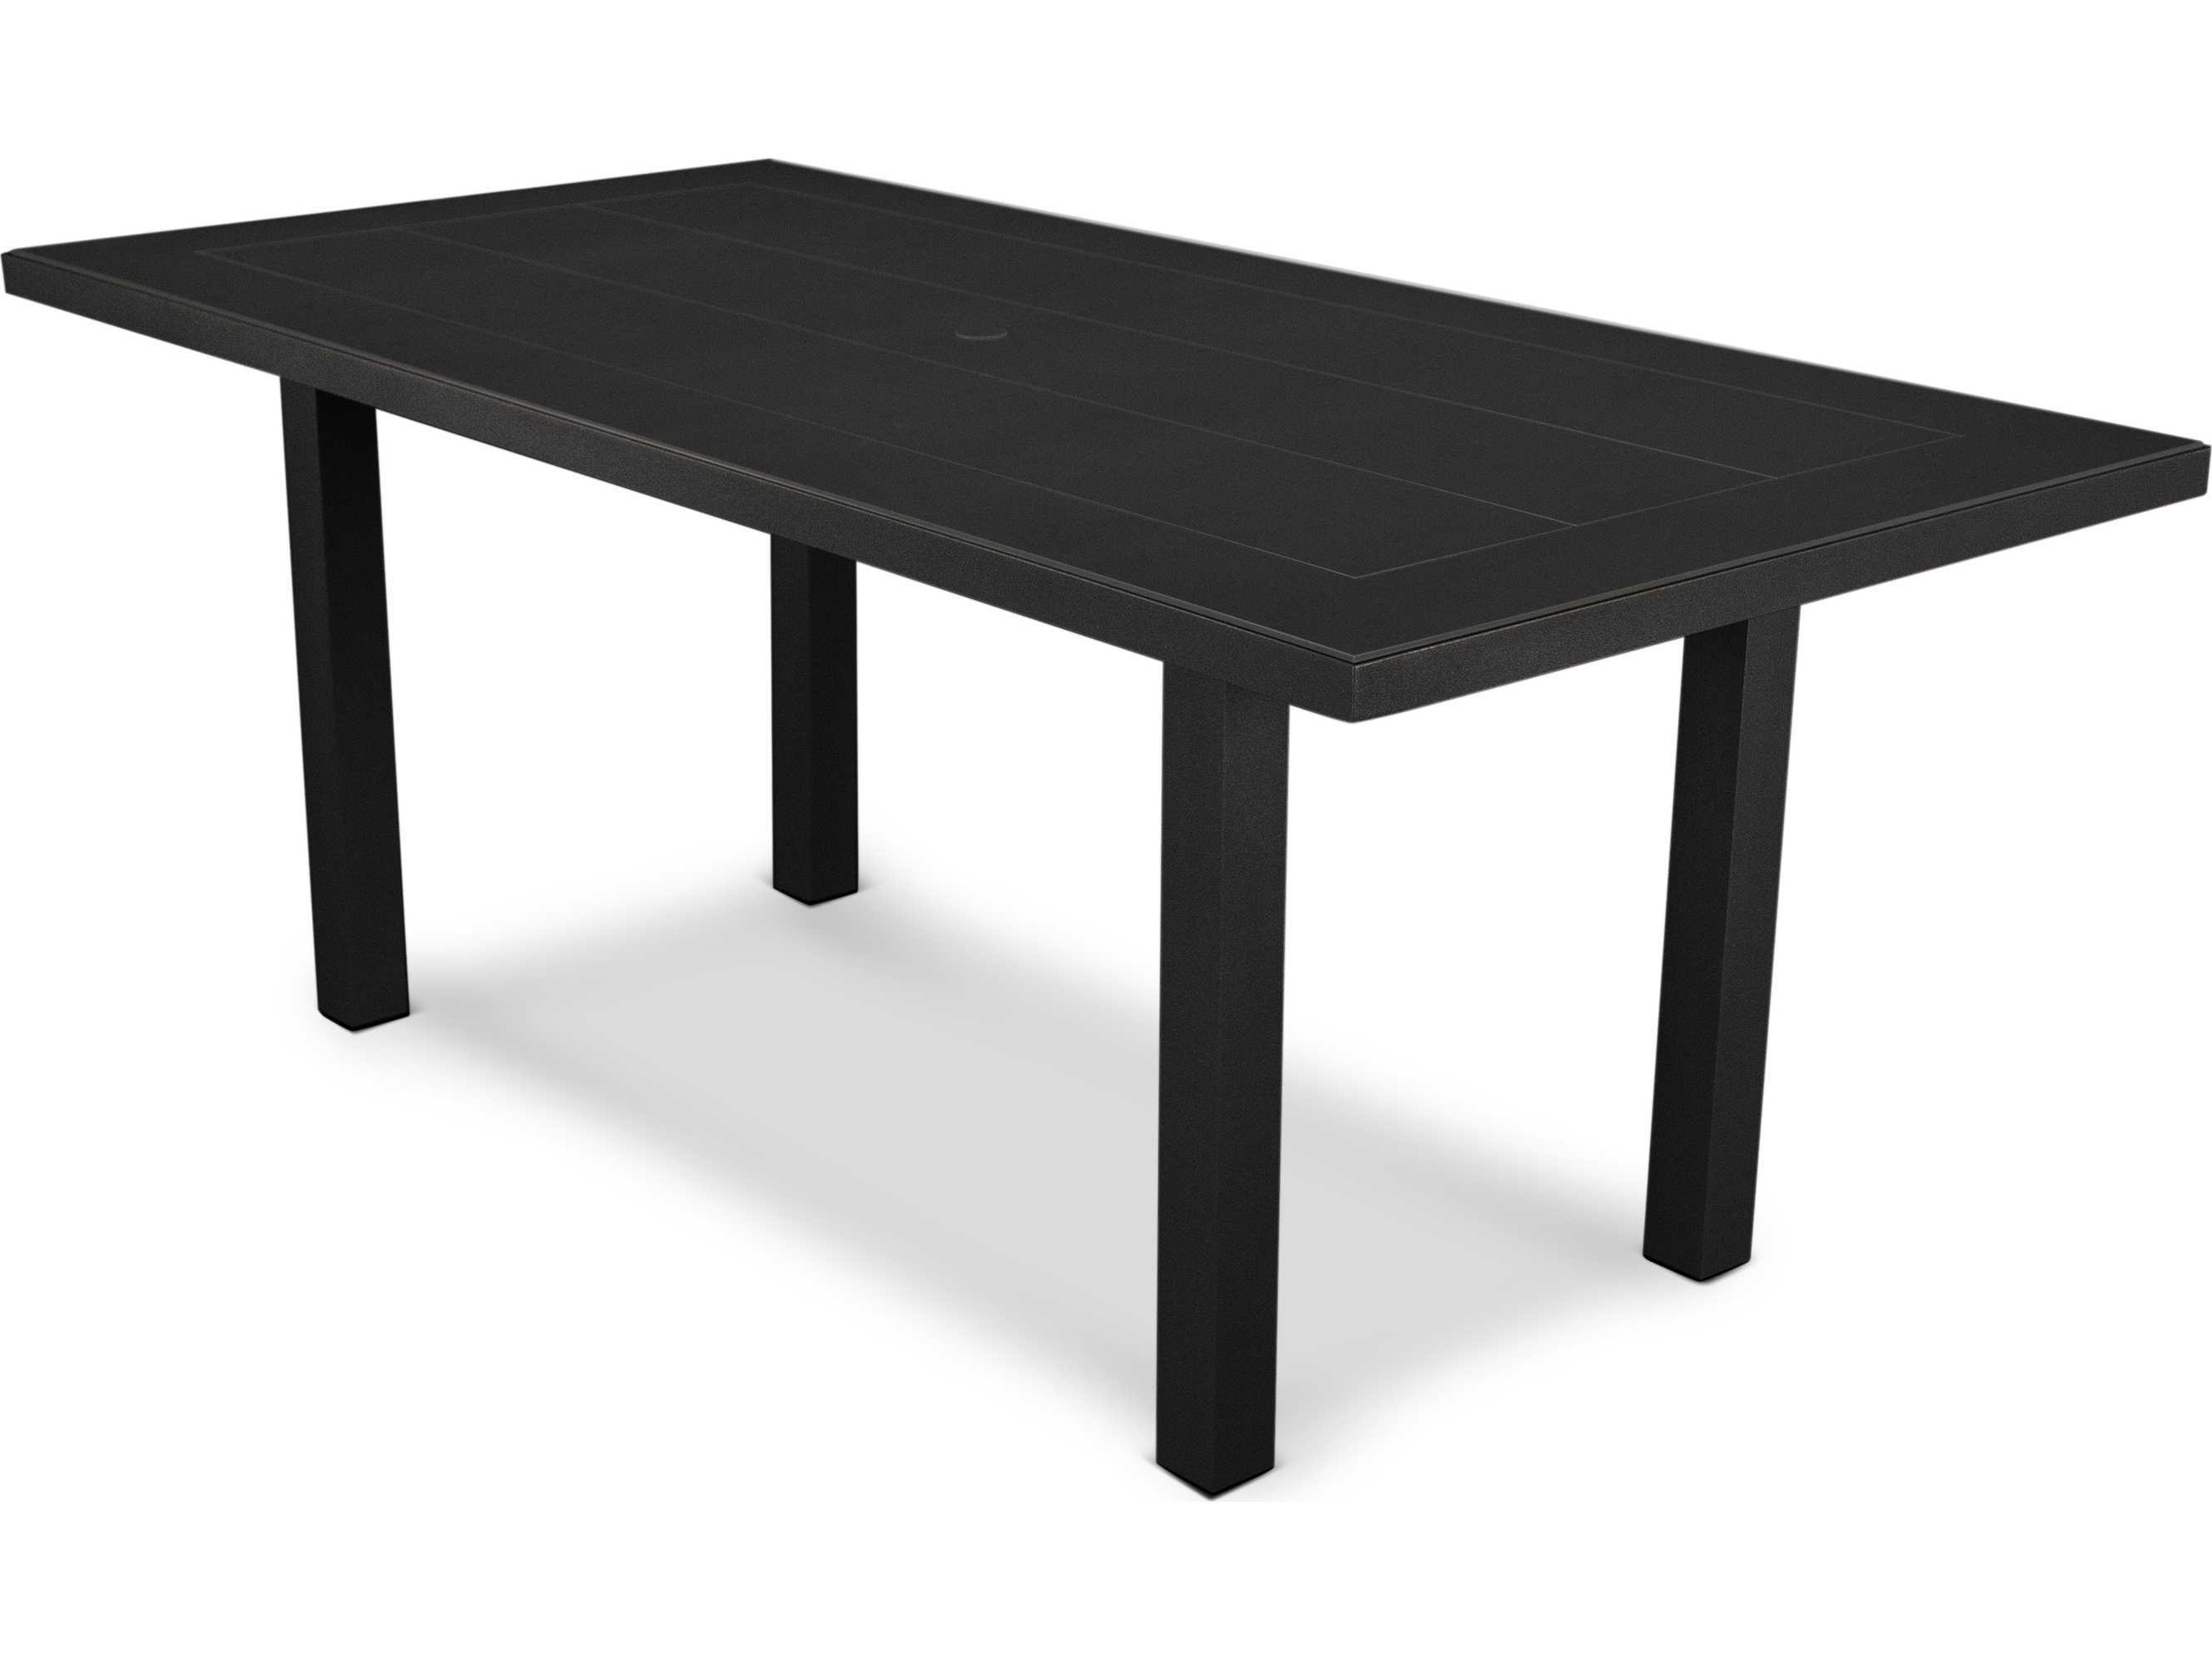 POLYWOOD Euro SOLID X Aluminum Dining Table AT - 72 x 72 square dining table